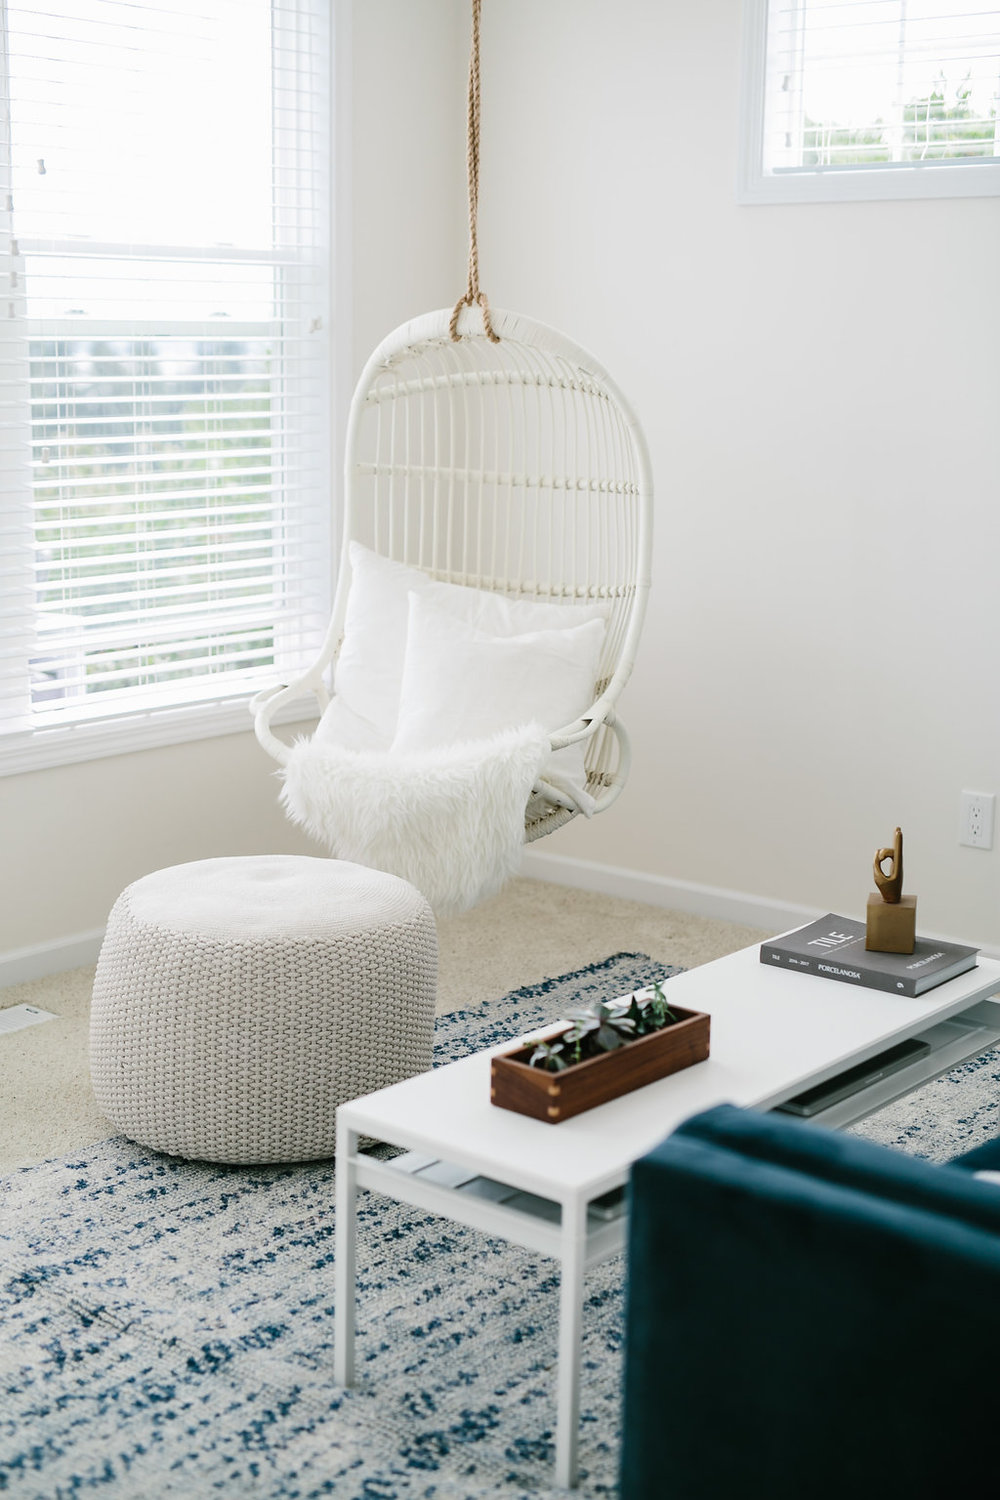 Hanging chair in office with decor accents.